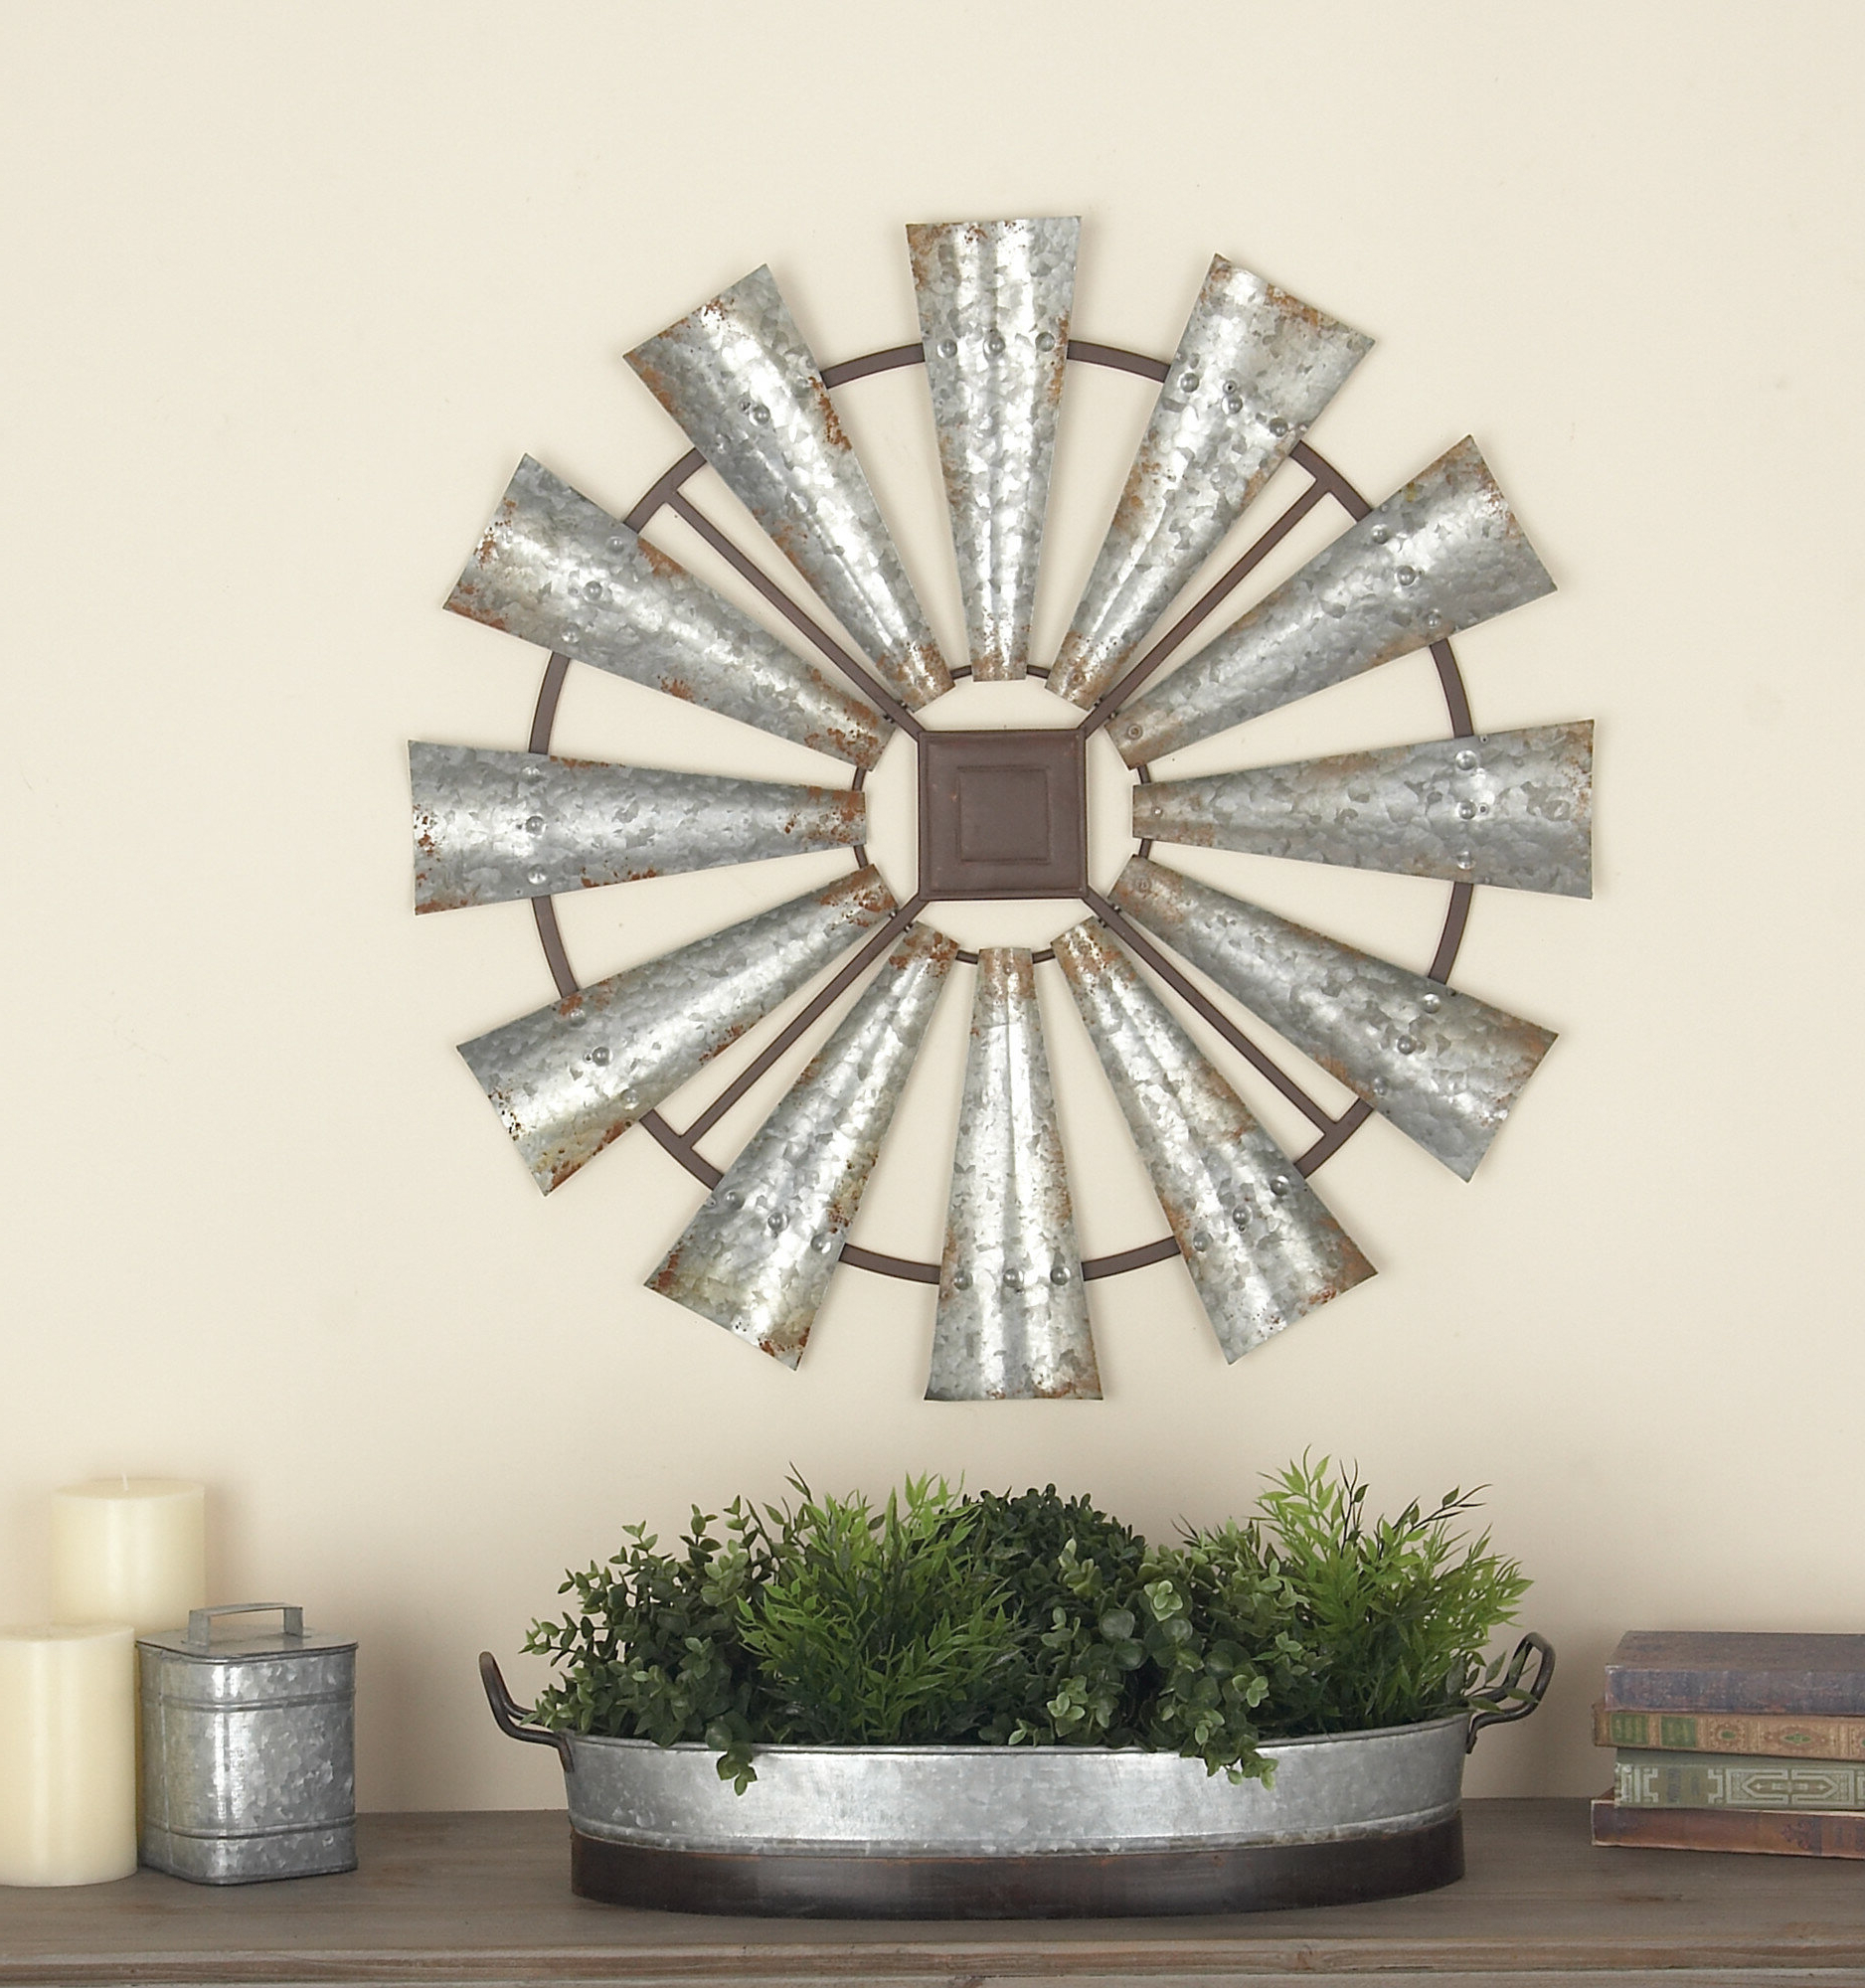 Latest Rustic Metal Wall Décor By Winston Porter Intended For Metal Wall Décor (View 16 of 20)